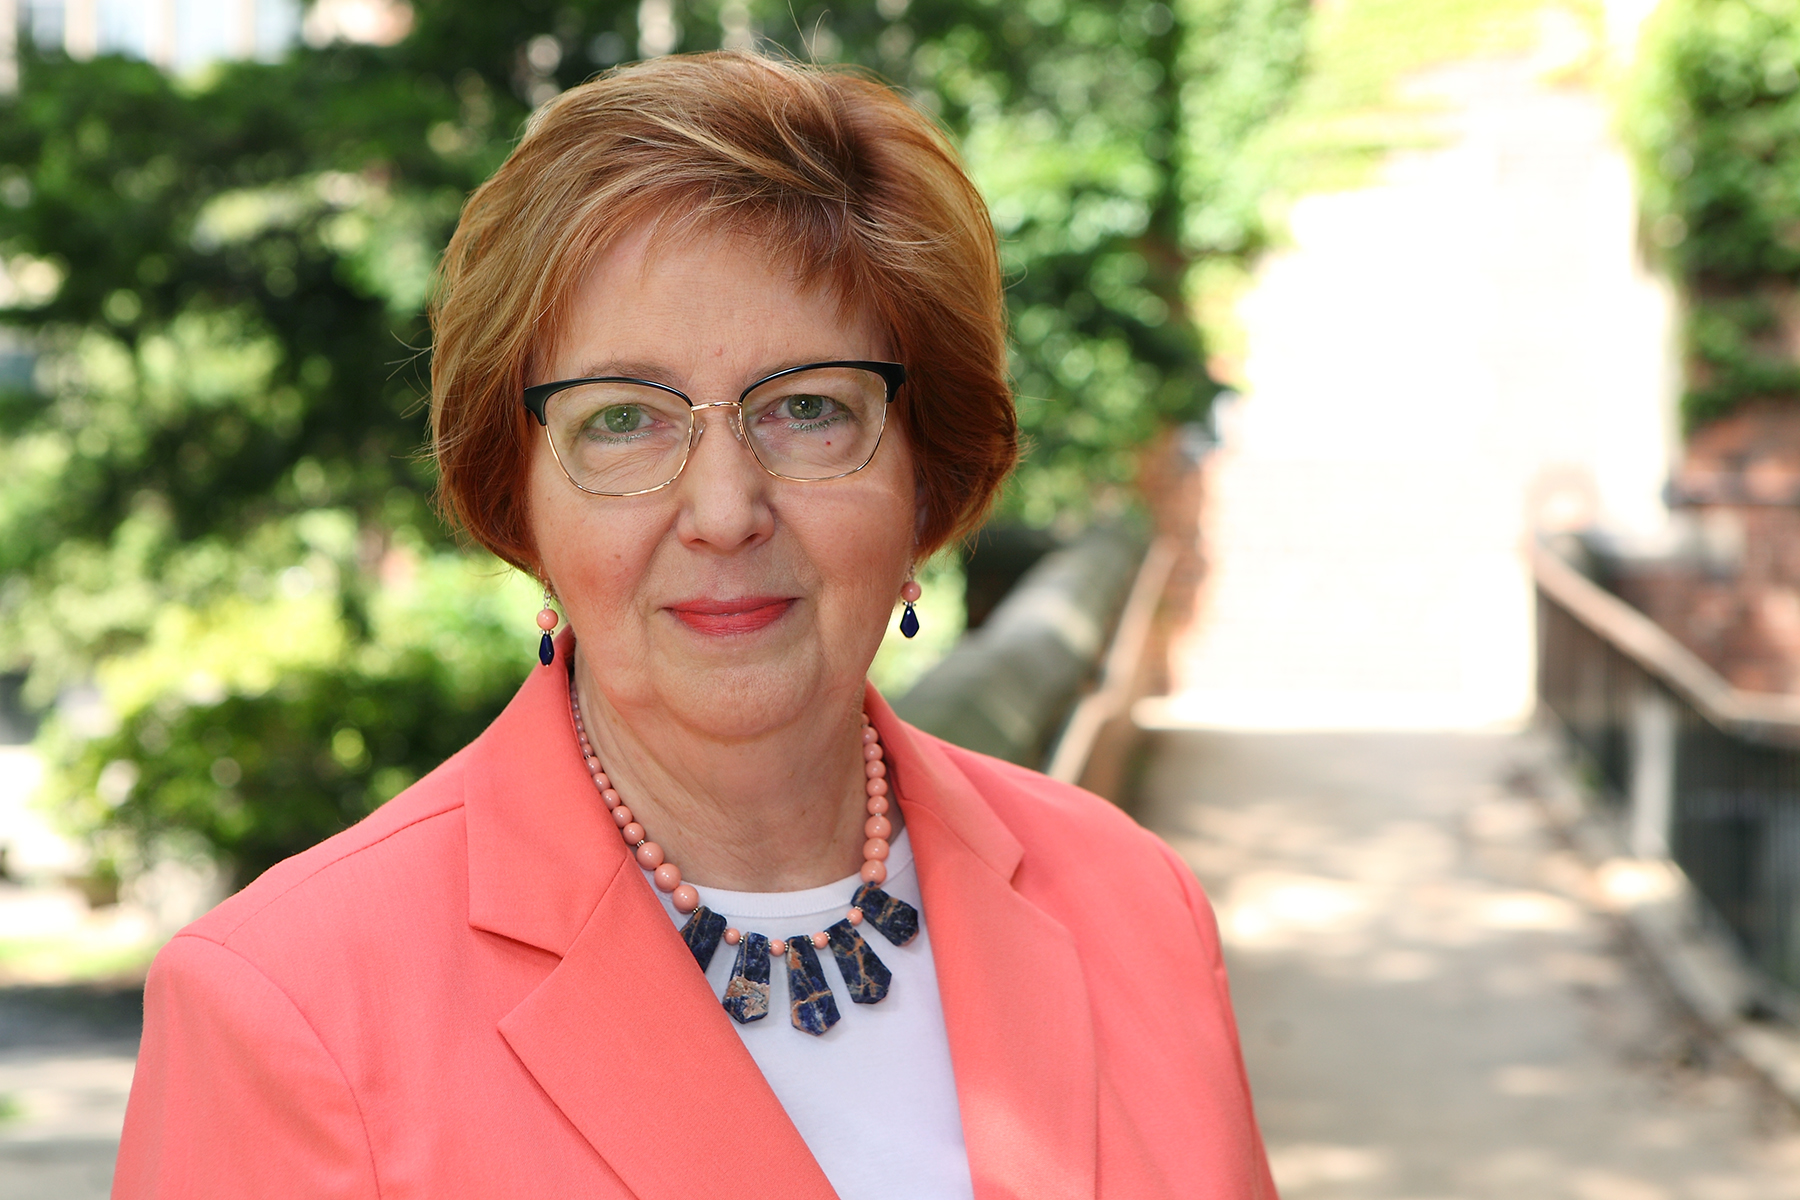 Margret Amatayakul, president of Margret\A Consulting and a UIC graduate and former faculty member.